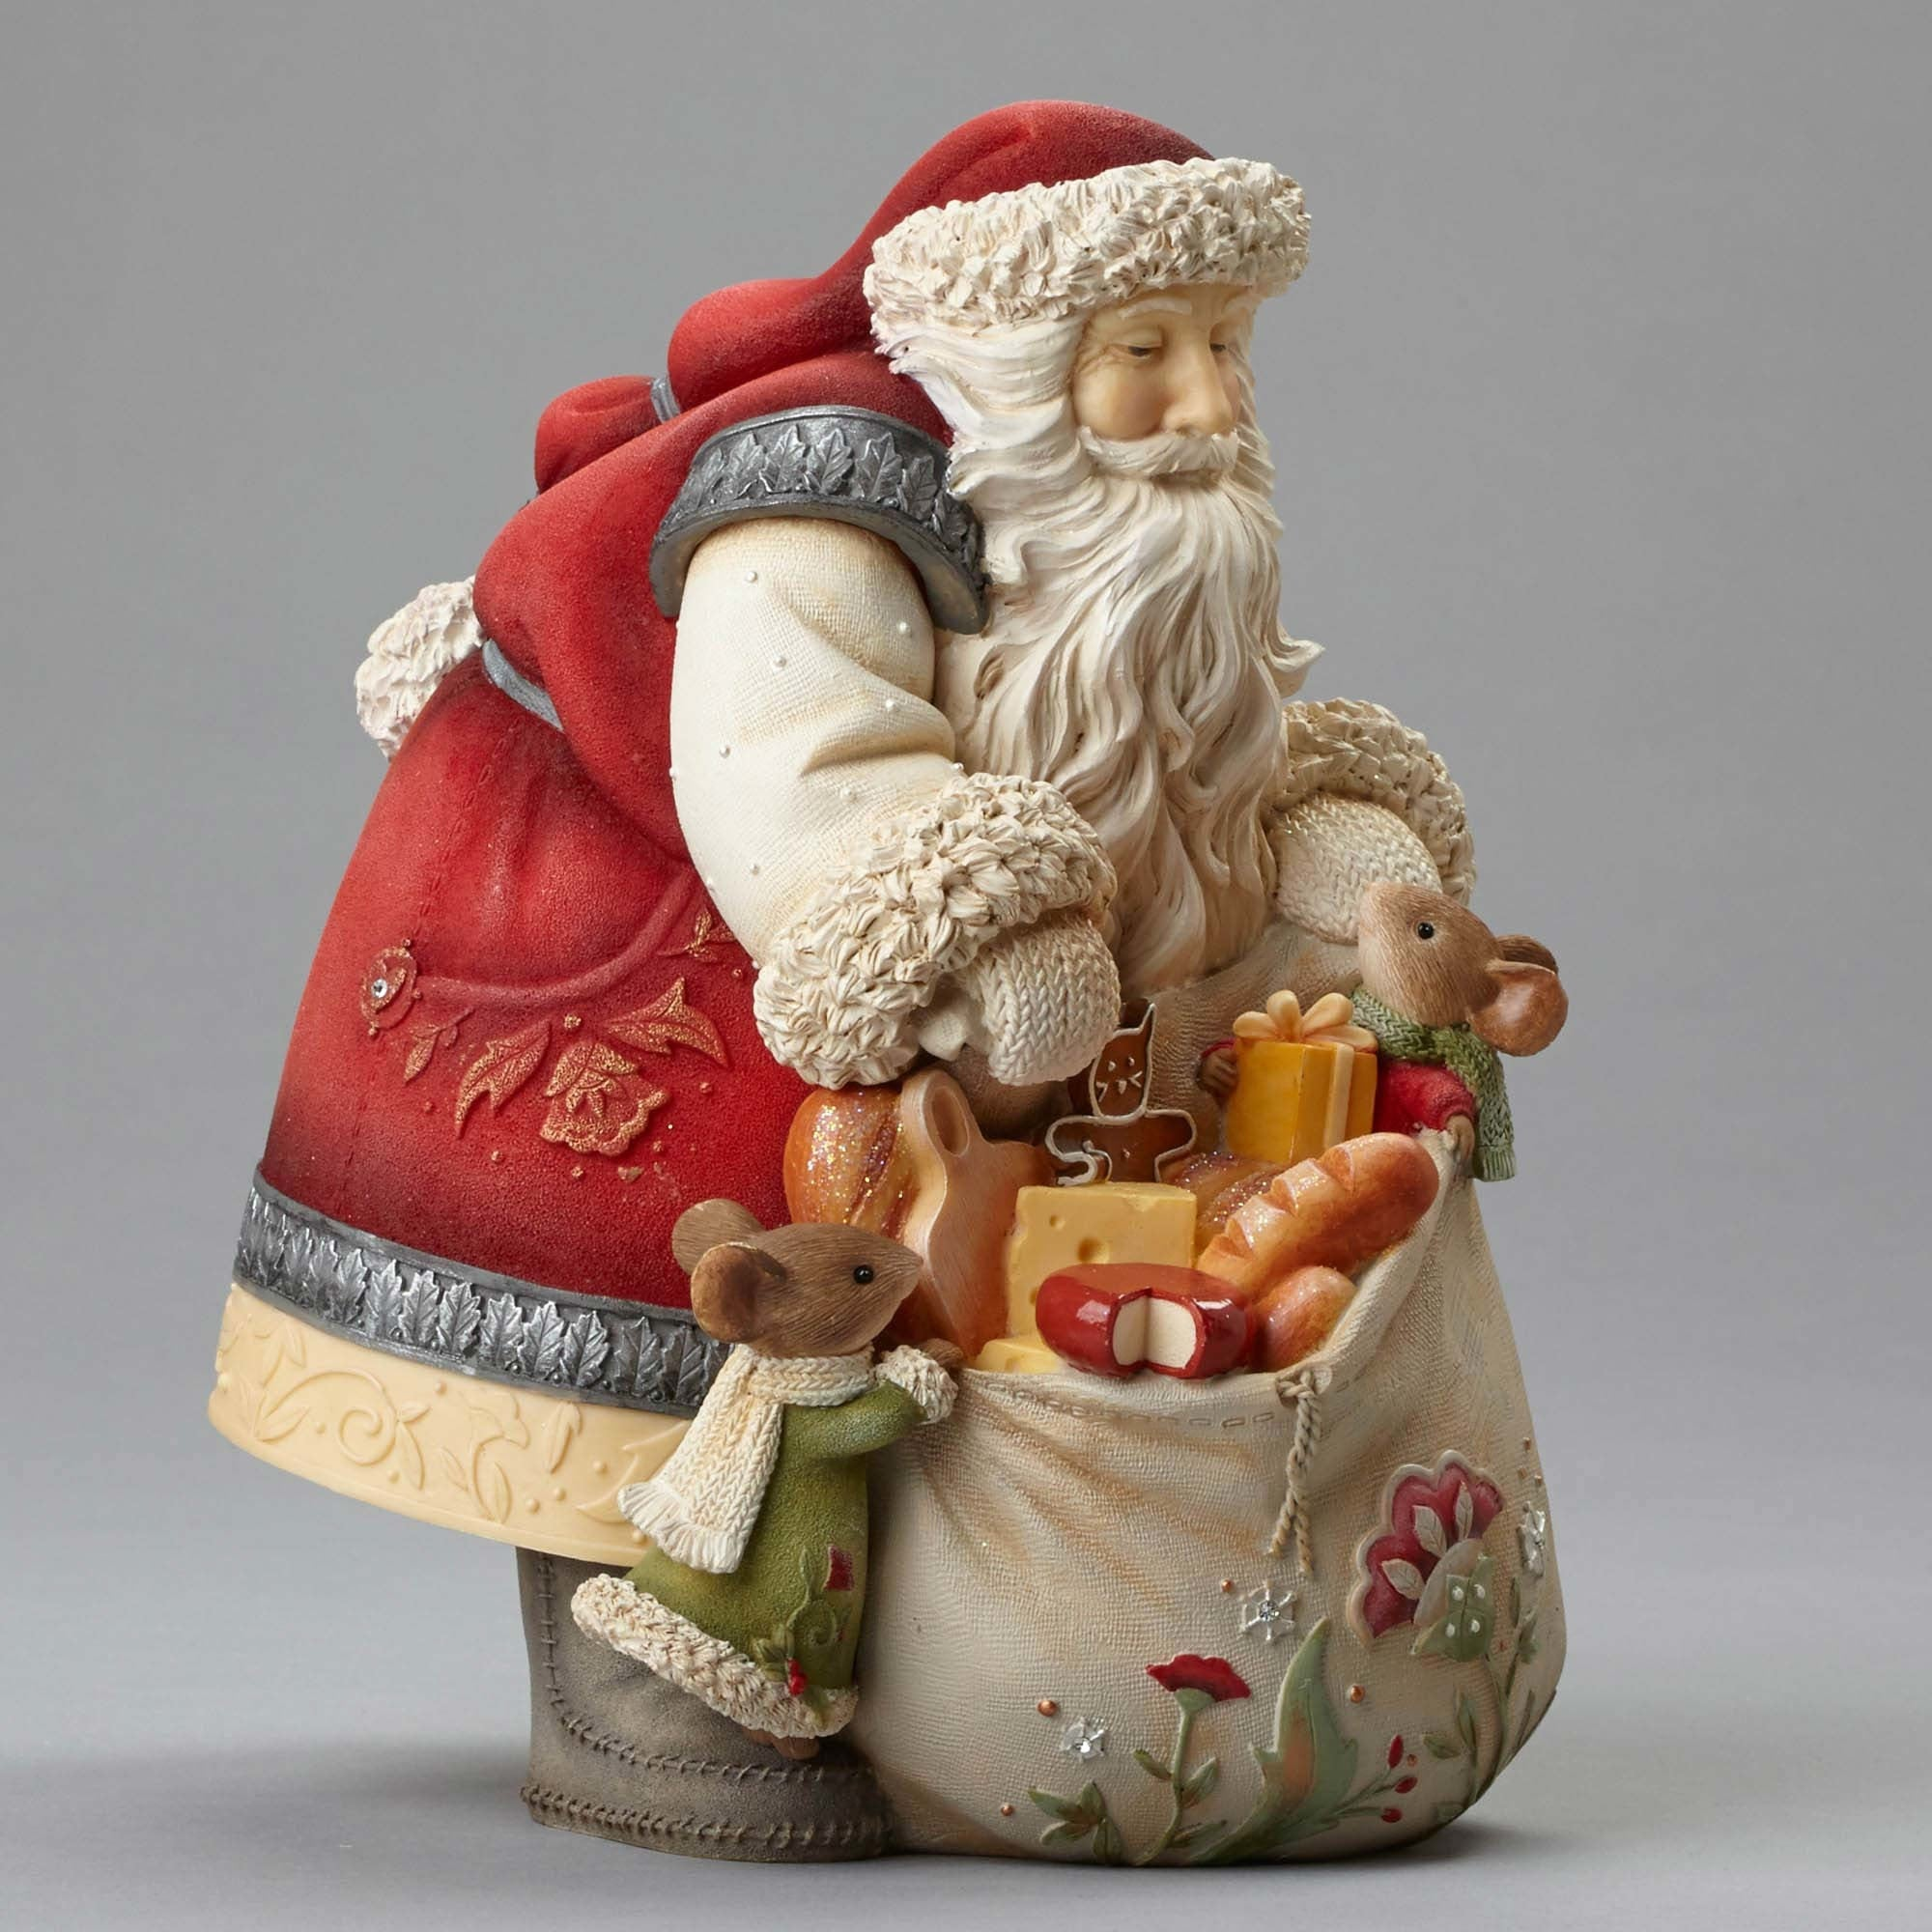 Santa with A Bag Full of Gifts for Mice Figurine